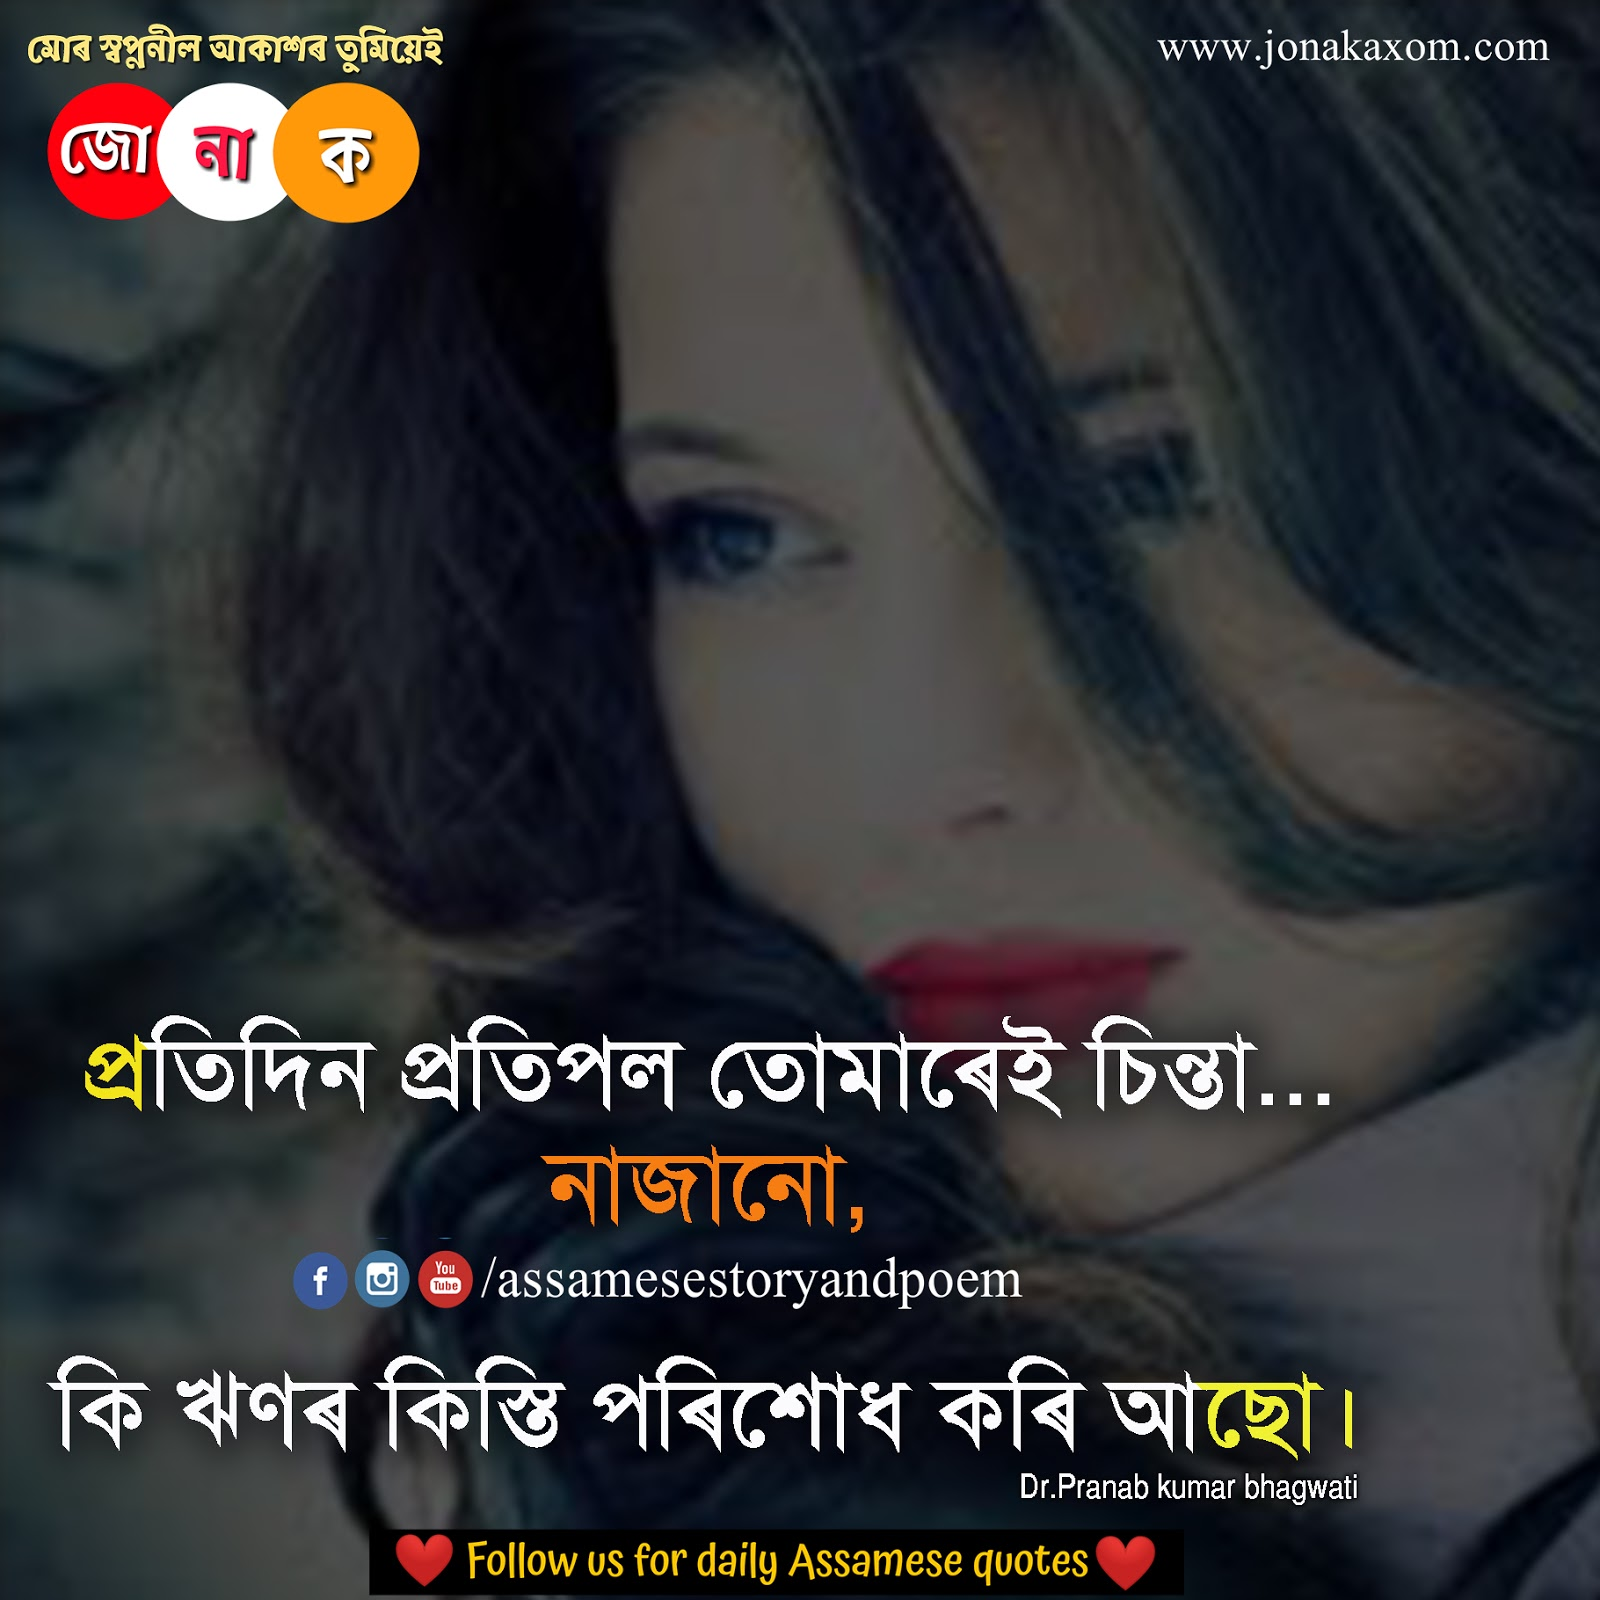 100 BEST ASSAMESE QUOTE COLLECTION